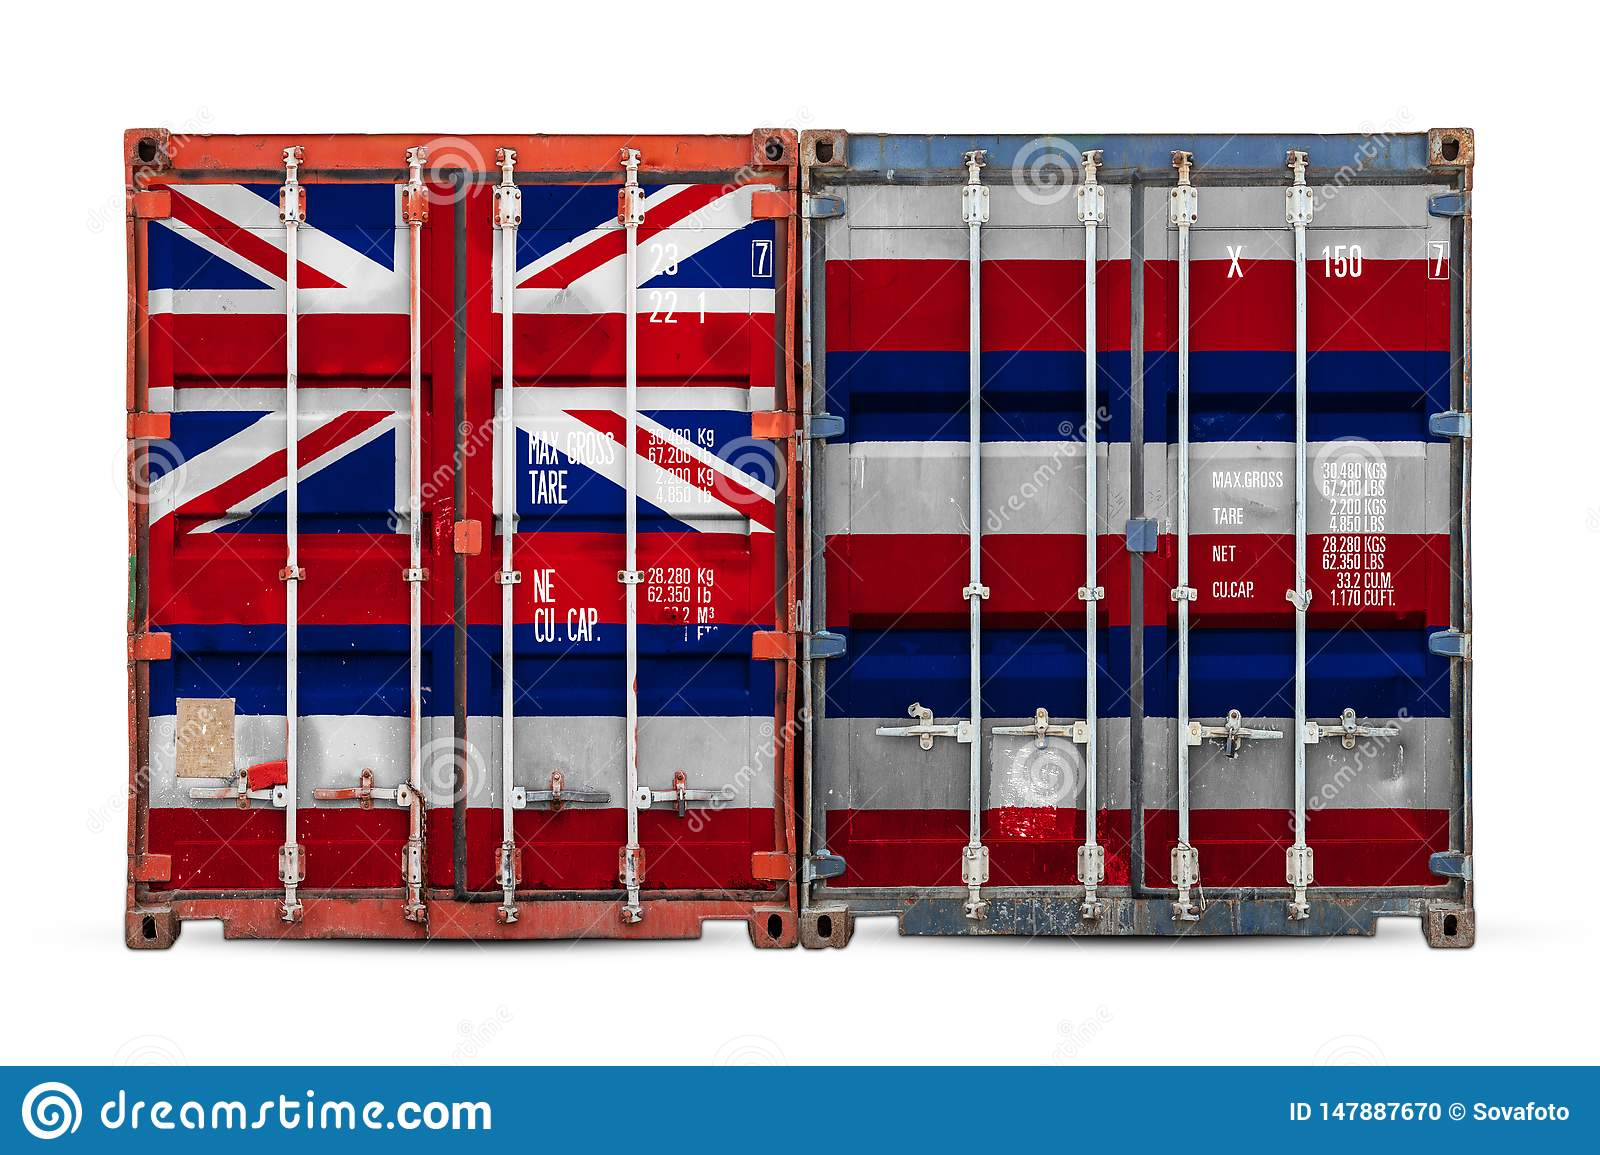 Close-up of the container with the national flag